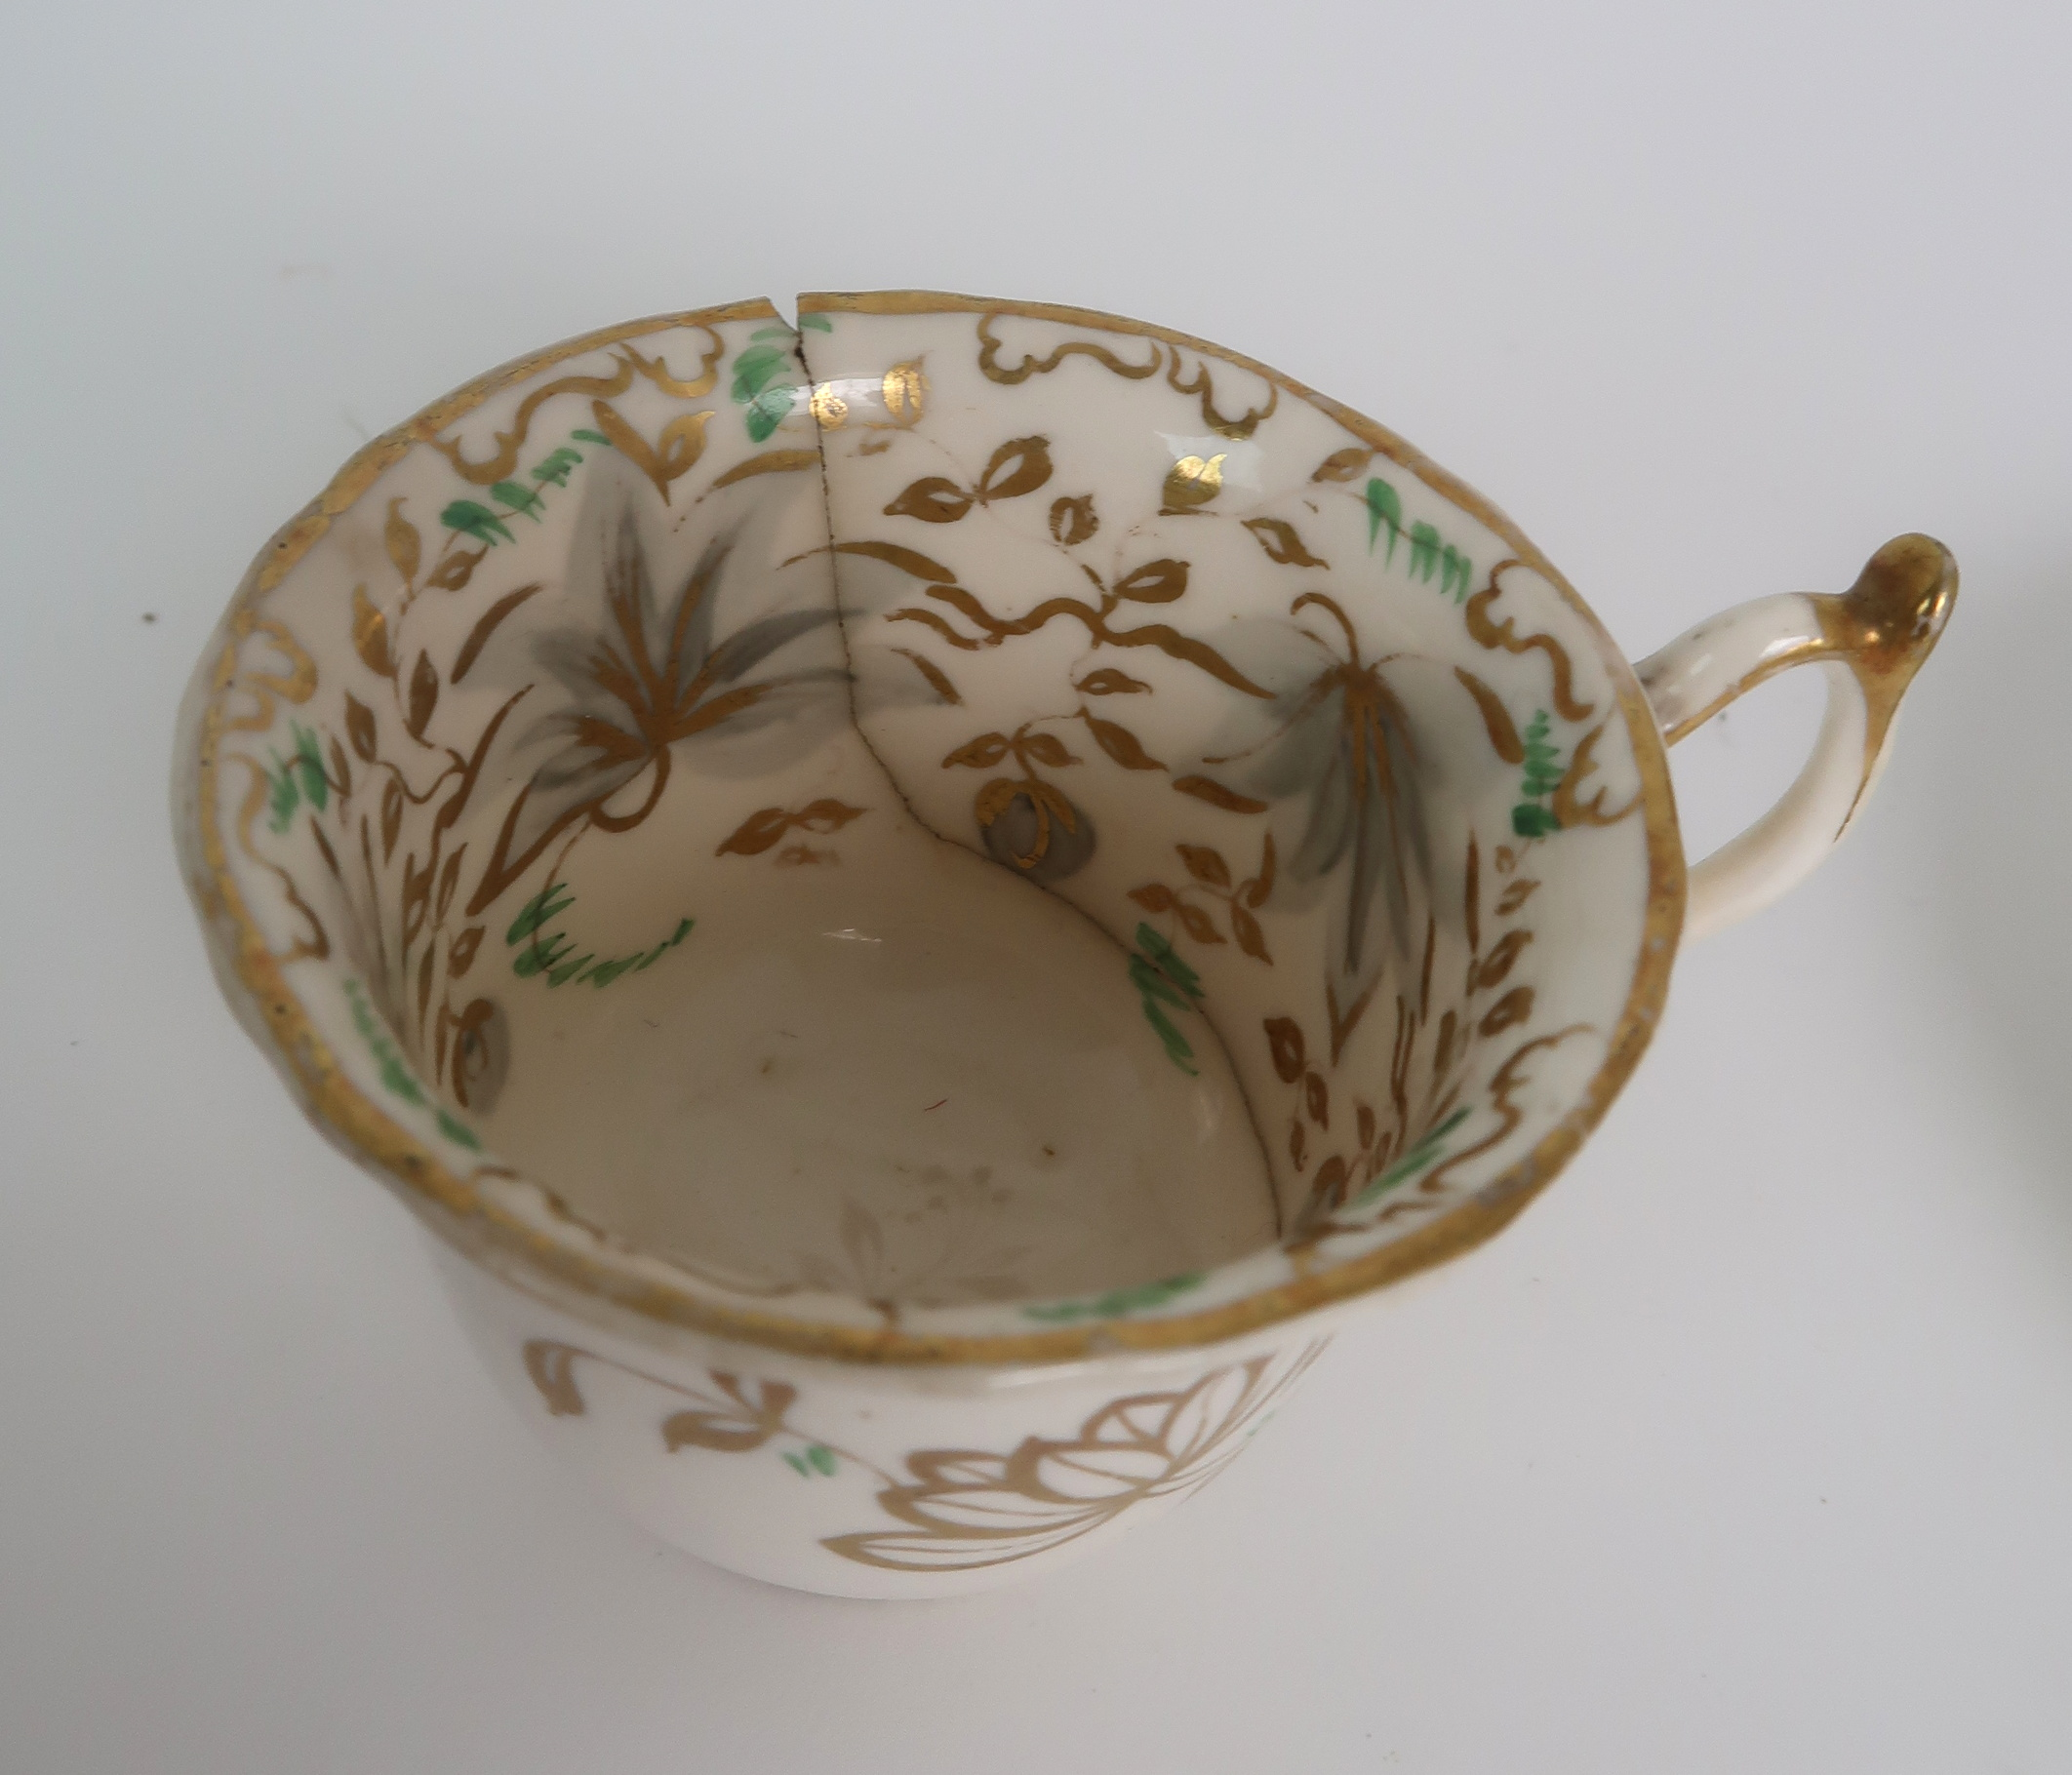 A COLLECTION OF 19TH CENTURY ENGLISH TEA AND COFFEE WARES the white ground with either grey and gilt - Image 13 of 22